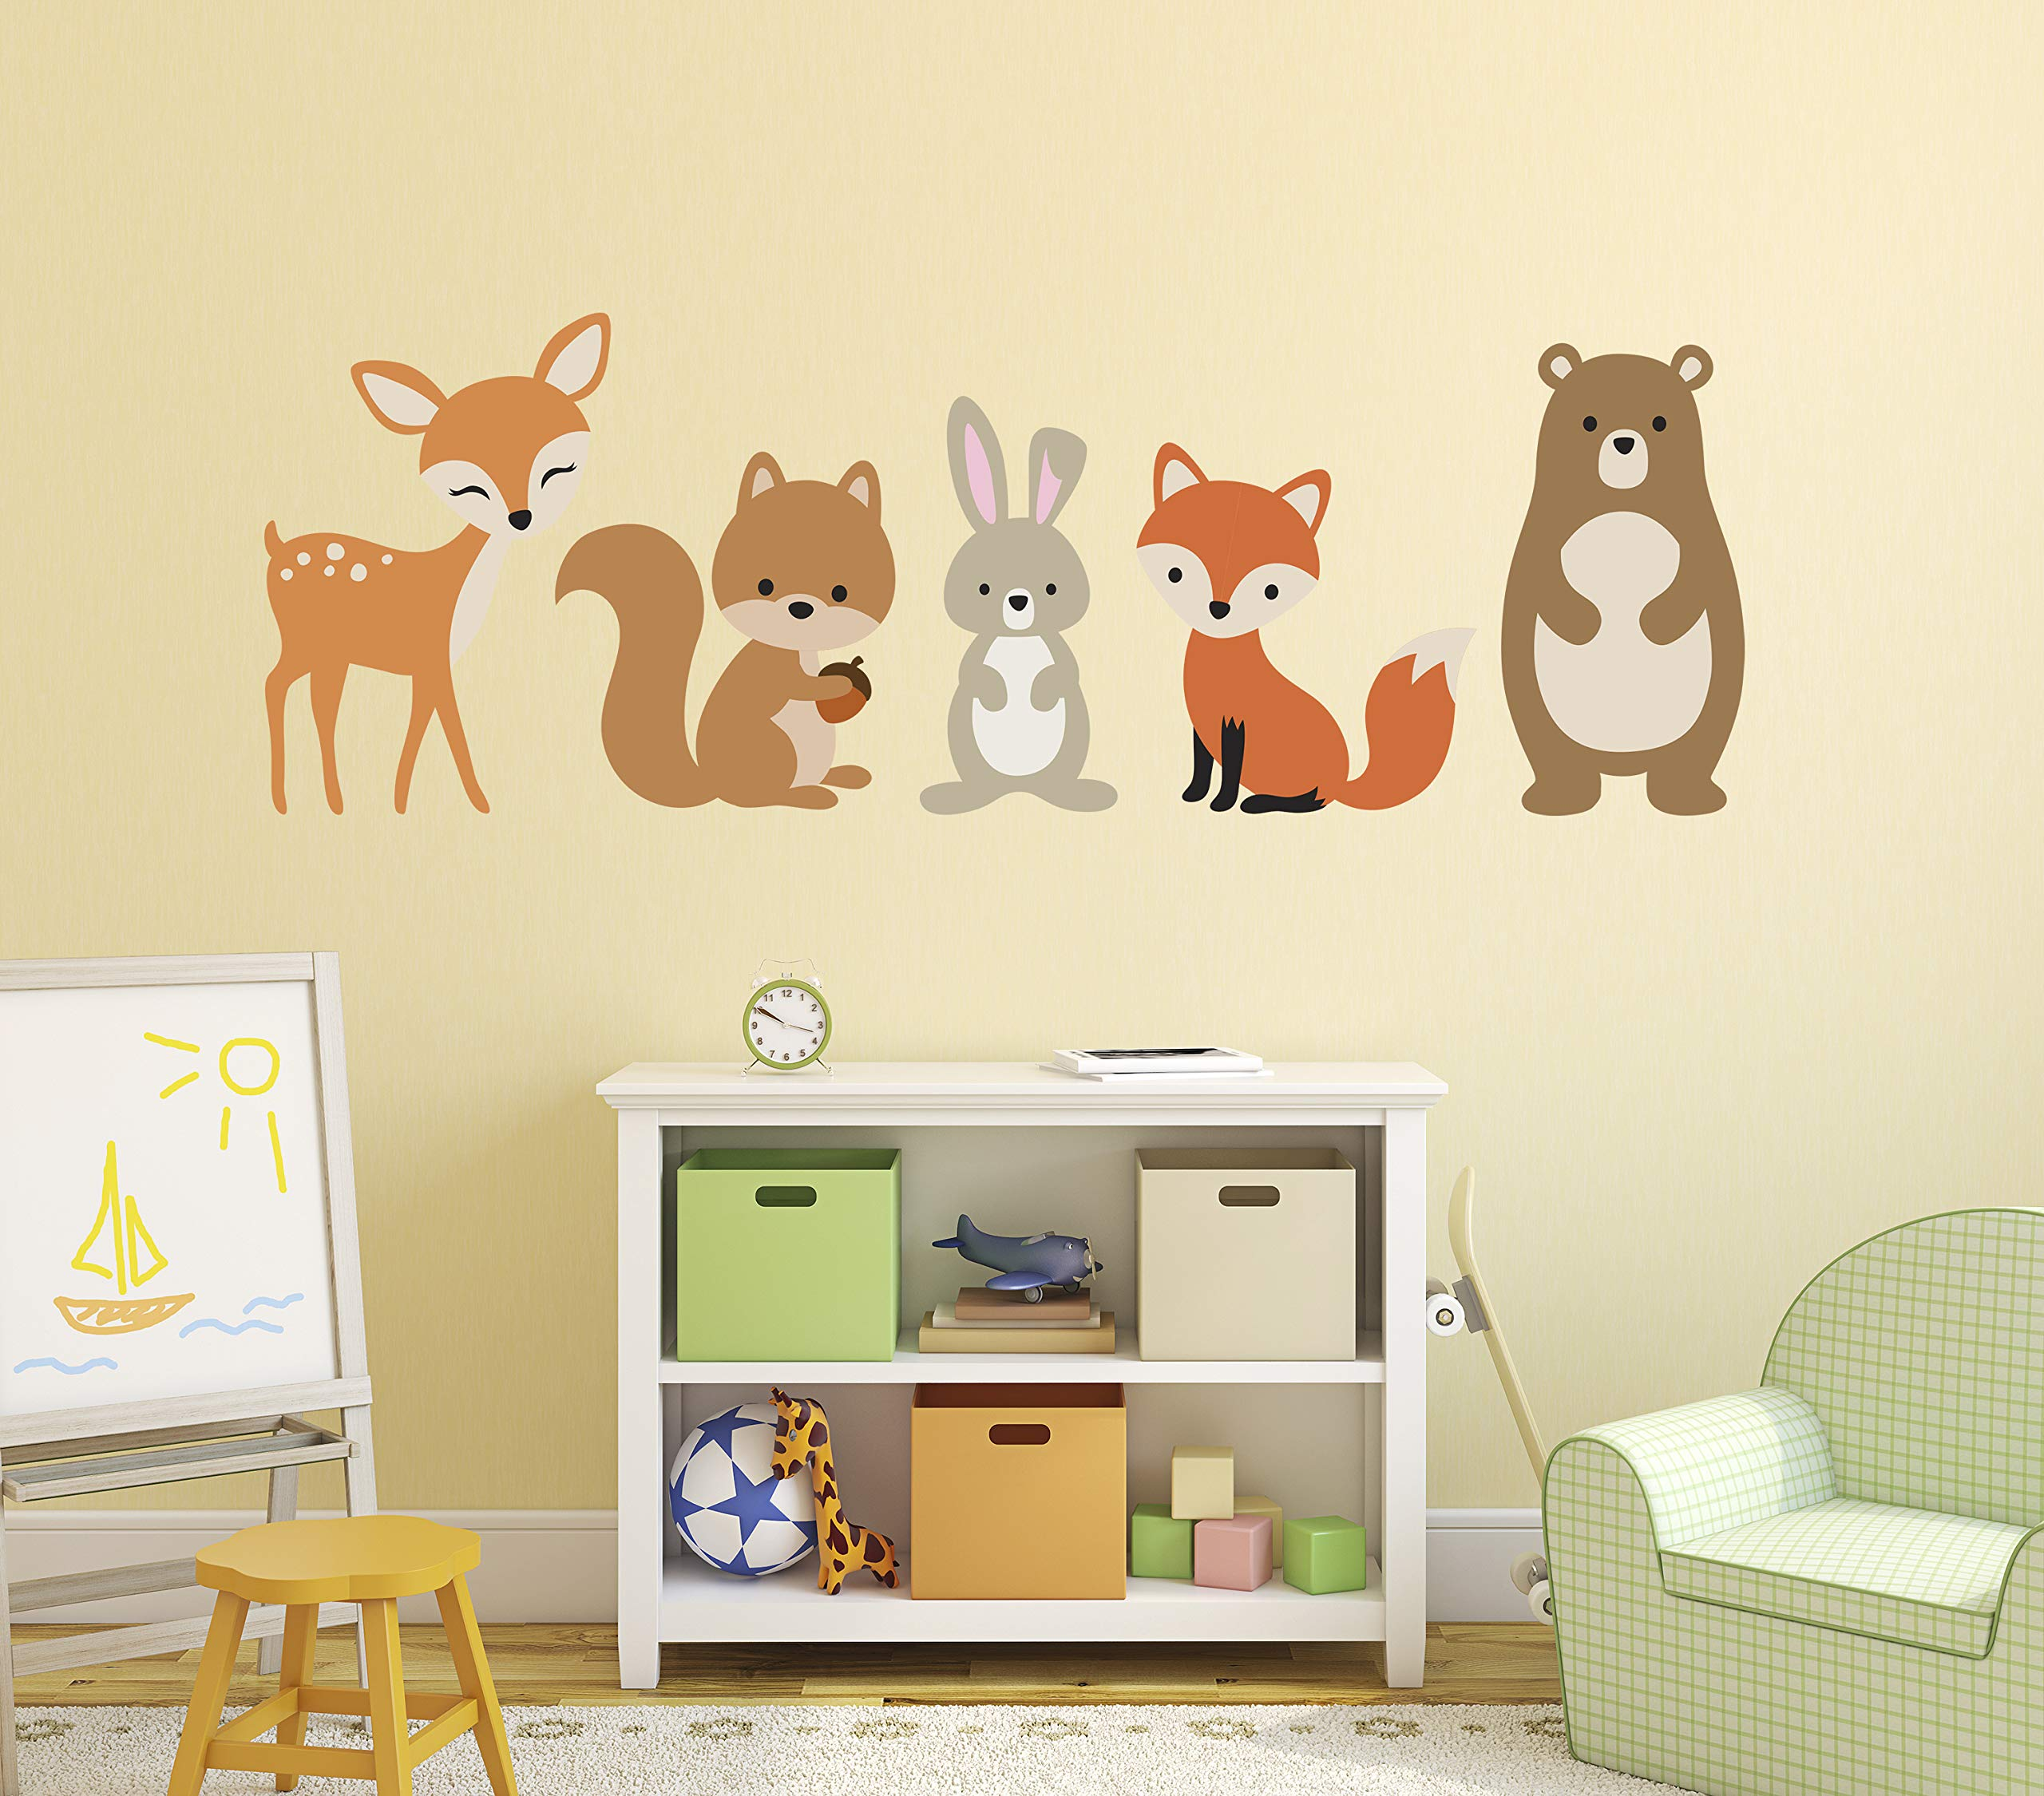 Woodland Animals Wall Decal Forest Nursery Baby Room Mural Art Decor Vinyl Sticker (48''W x 16''H) by Decalzone Inc